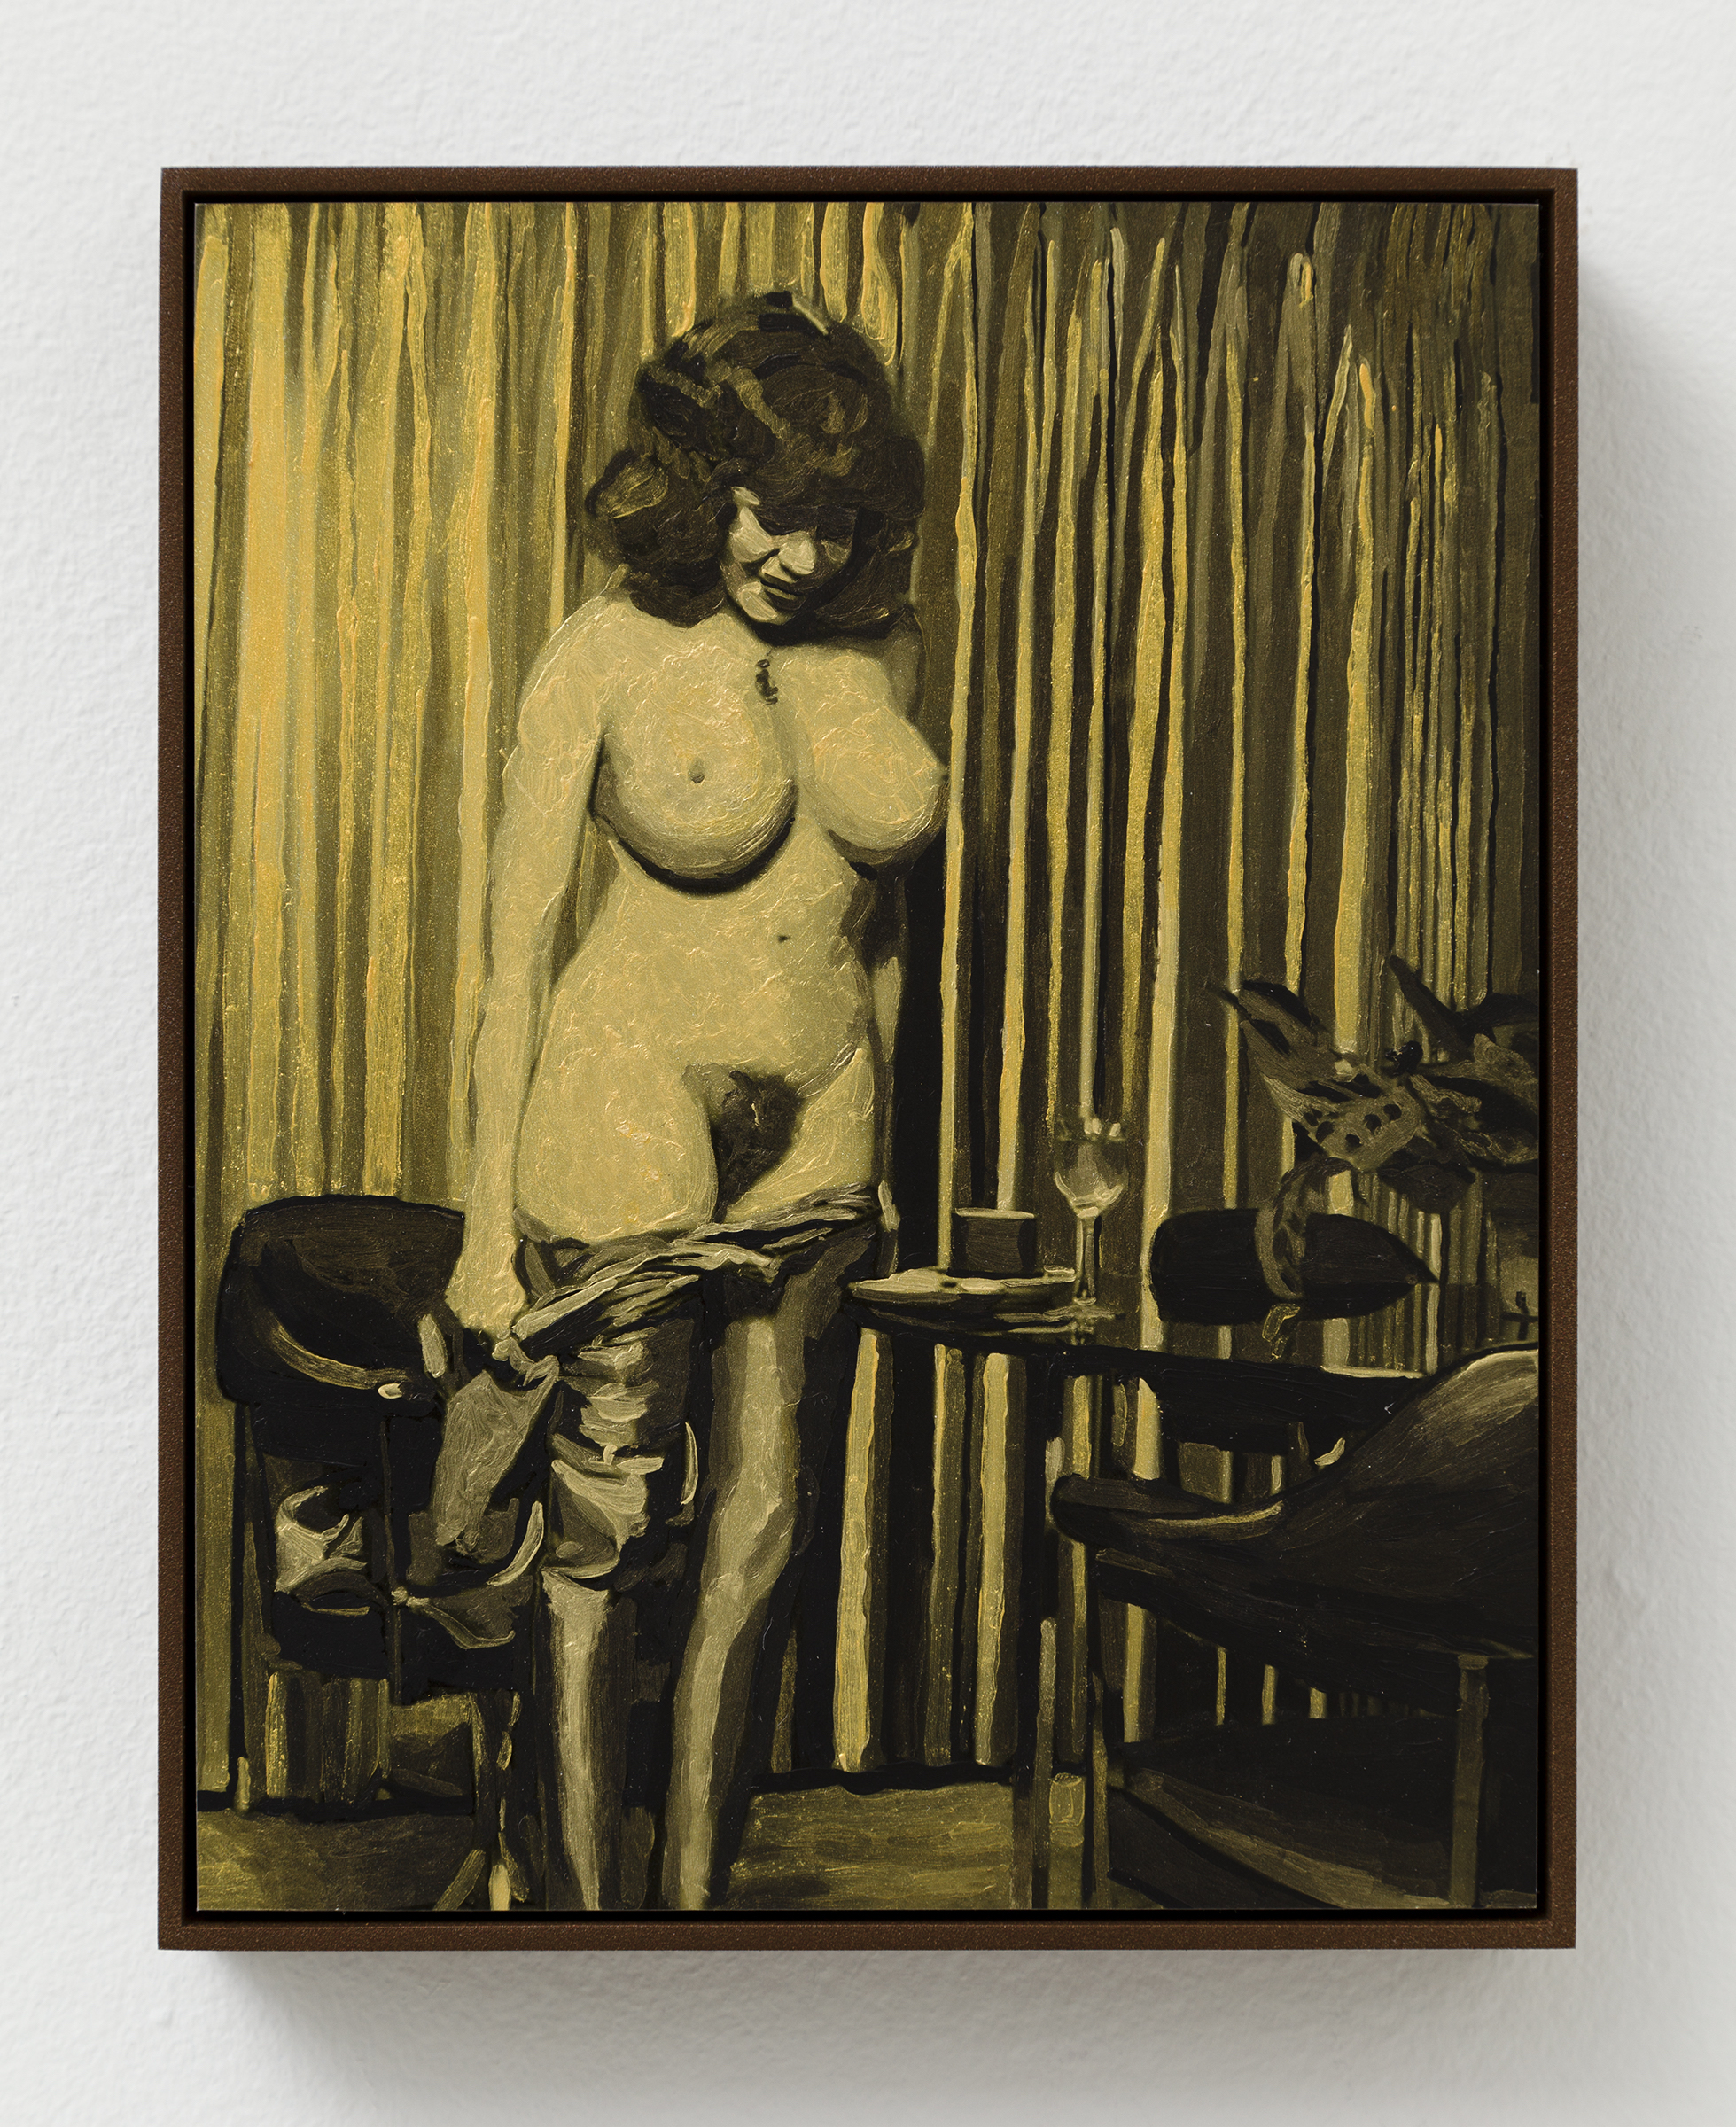 Aura Rosenberg,  Scene #10,  2014, acrylic paint, inkjet print on gold metallic photo paper mounted to dibond, 8⅞ x 6.938 in.